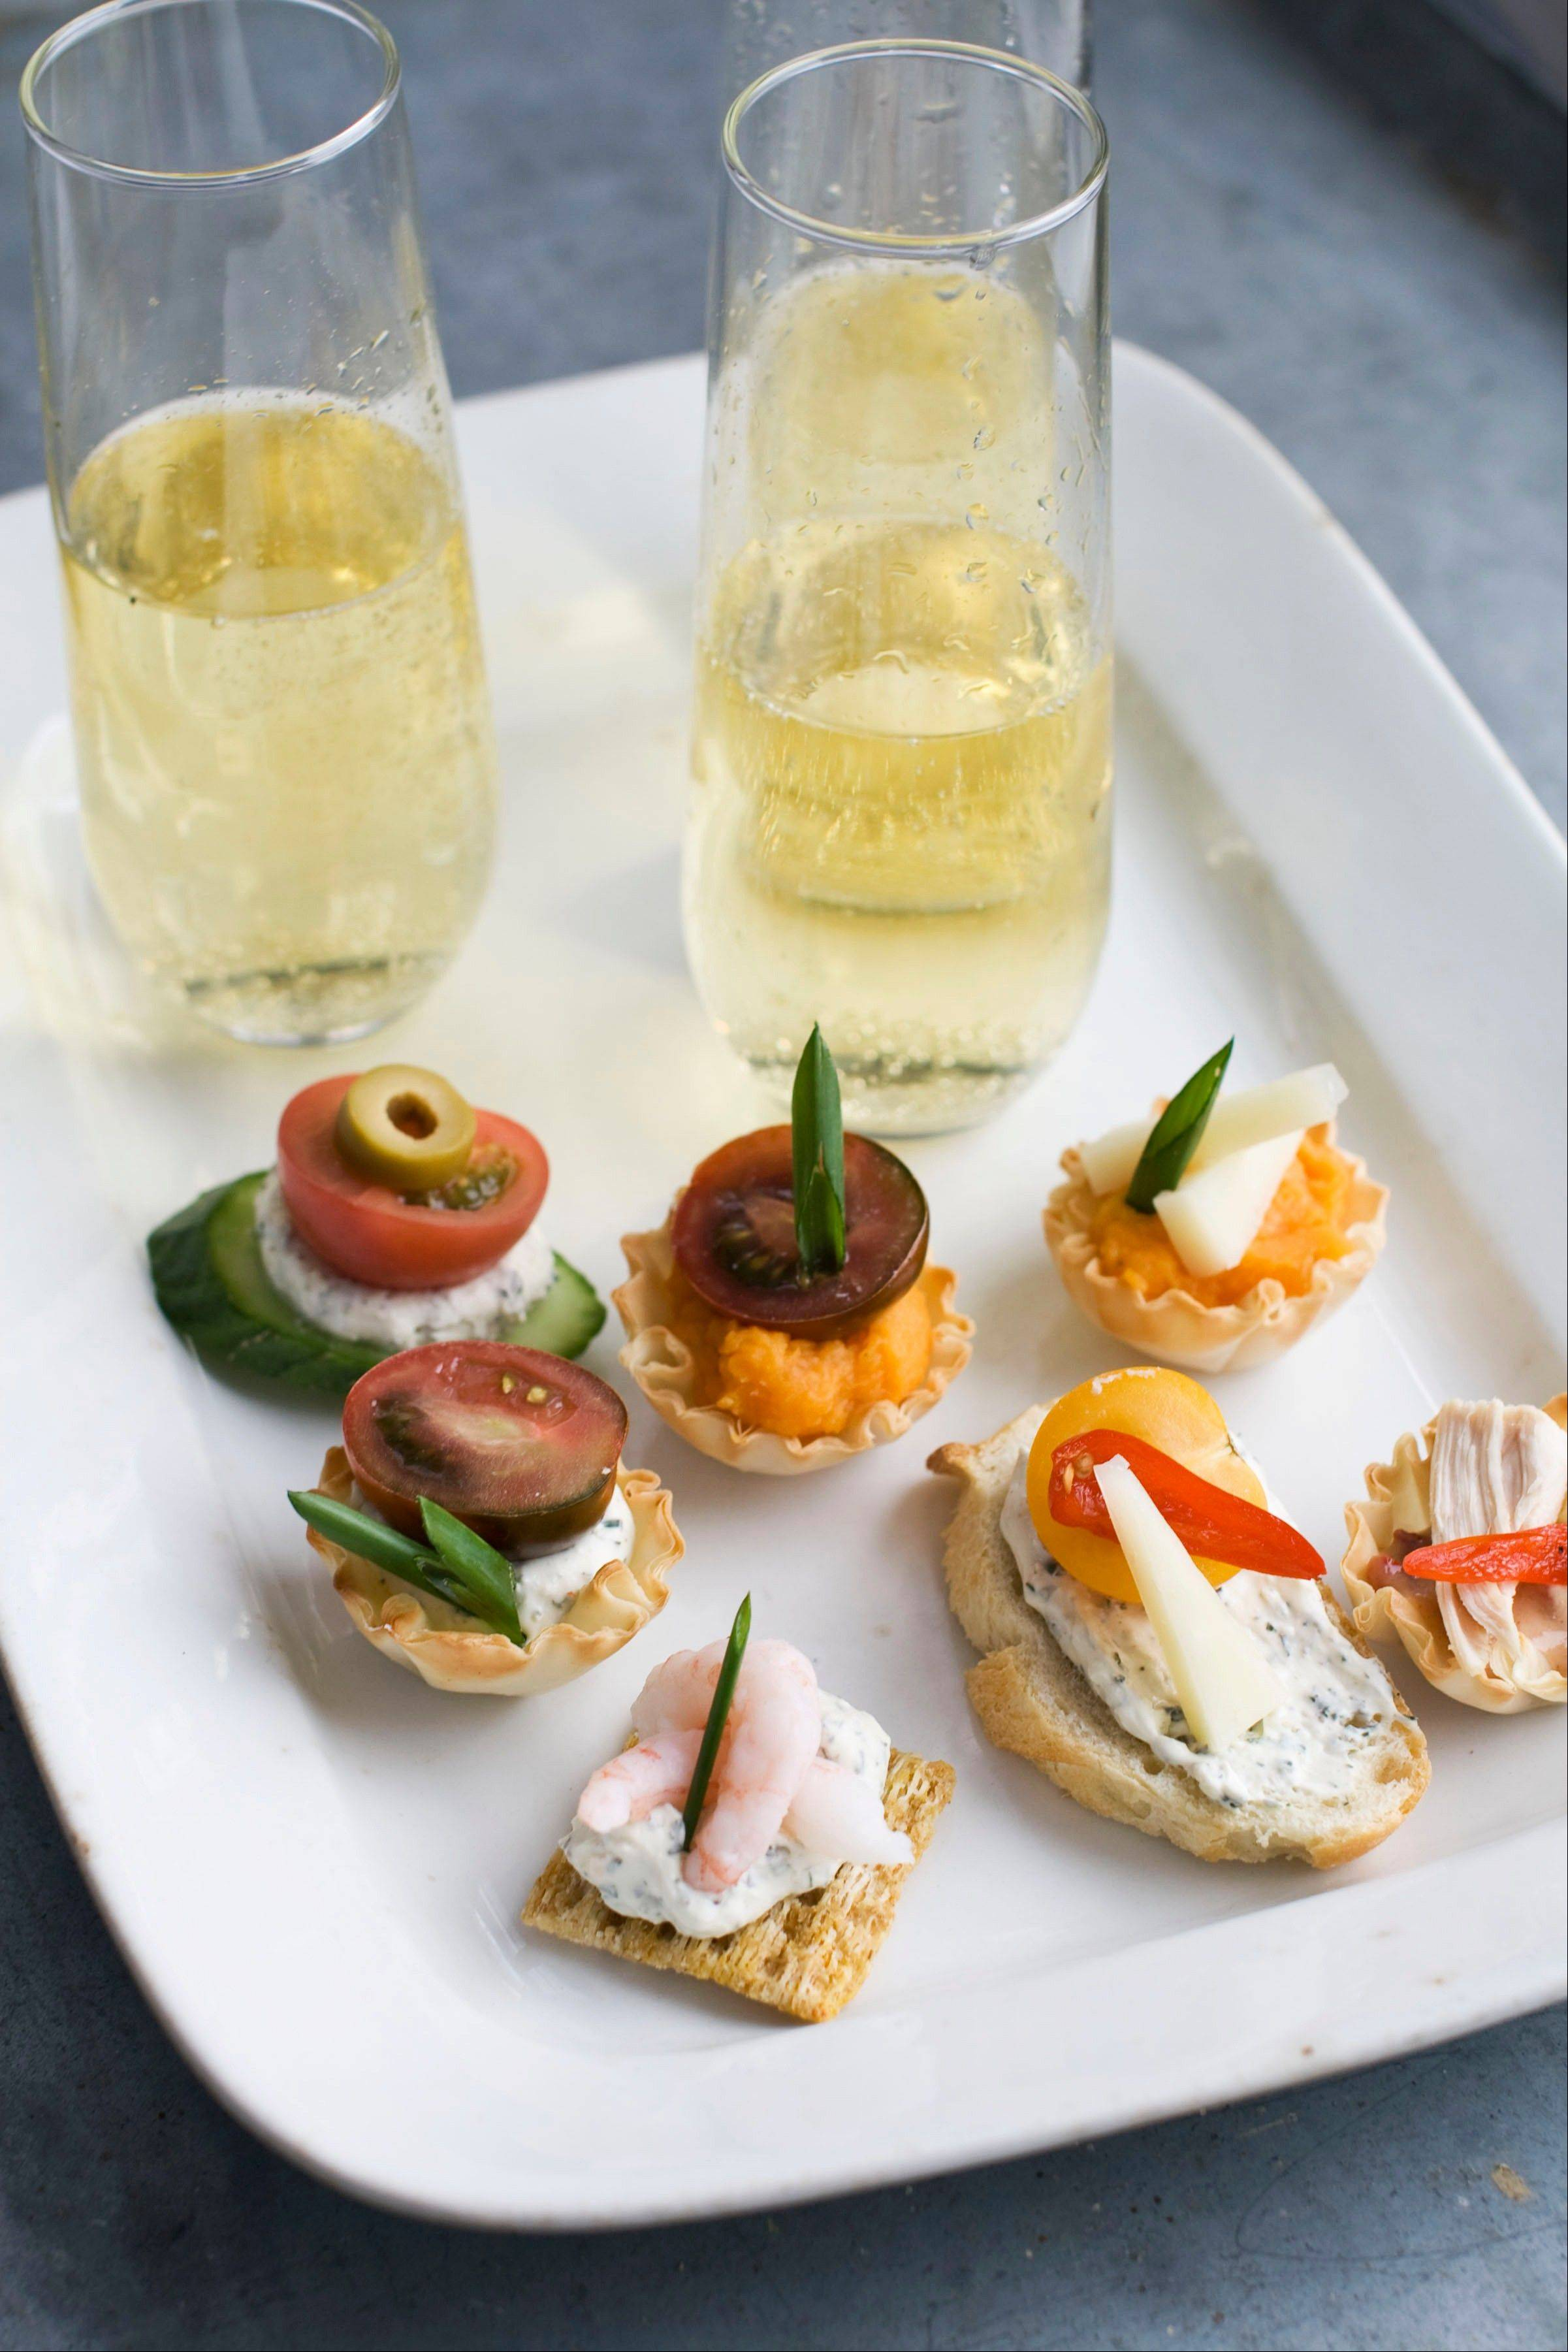 Using a building block approach to Oscar party canapes, guests can select from a buffet of ingredients -- from bases and spreads to toppings and garnishes -- to design snacks that suit their preferences.